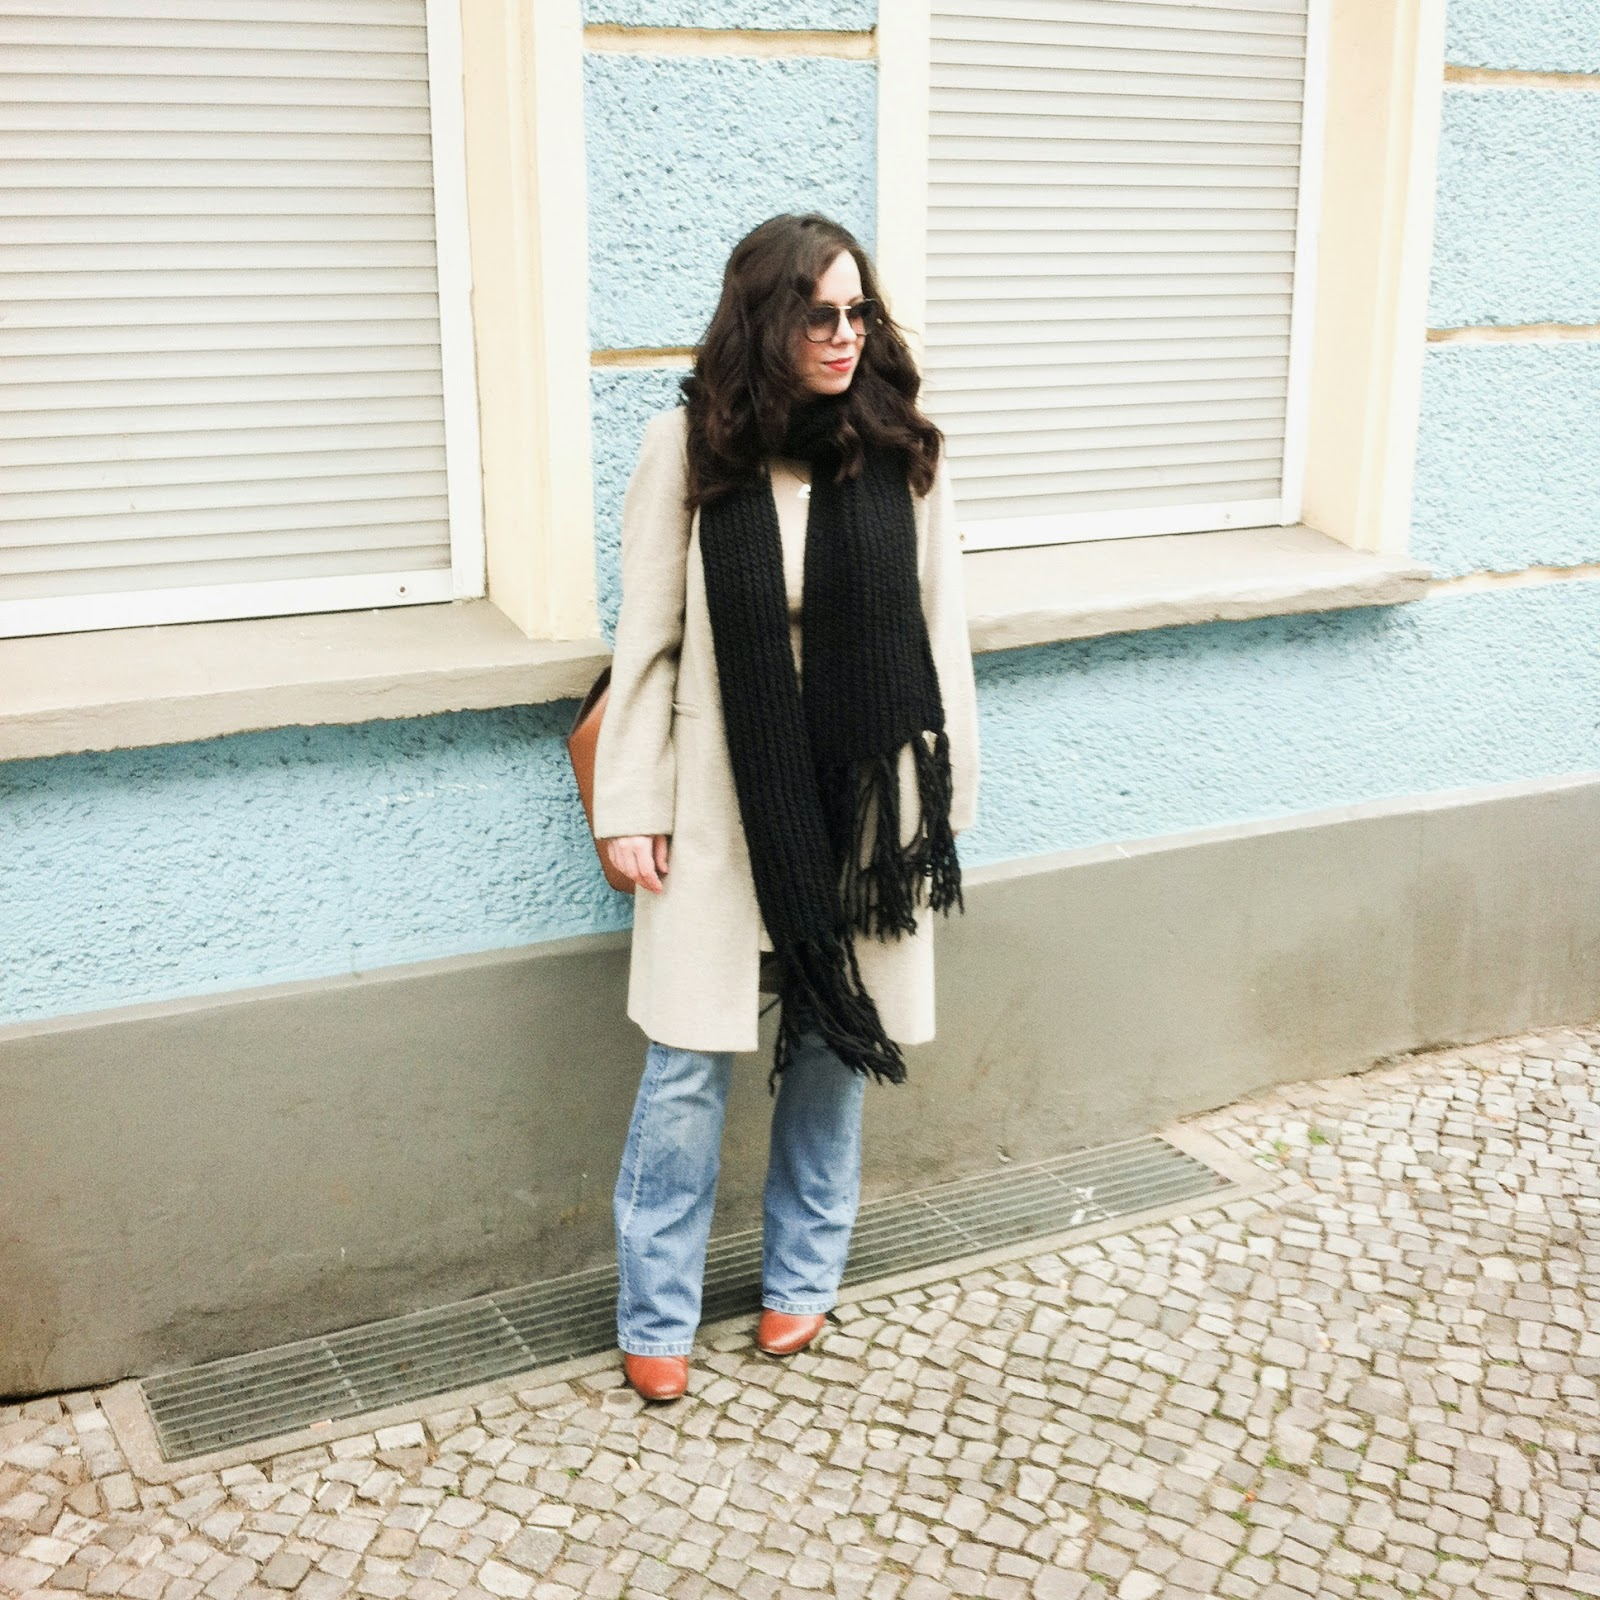 flare levi's jeans, denim, brown ankle boots Springfield, Zara brown bag, clean style, simple outfit ootd, fashion blogger, vintage nude coat